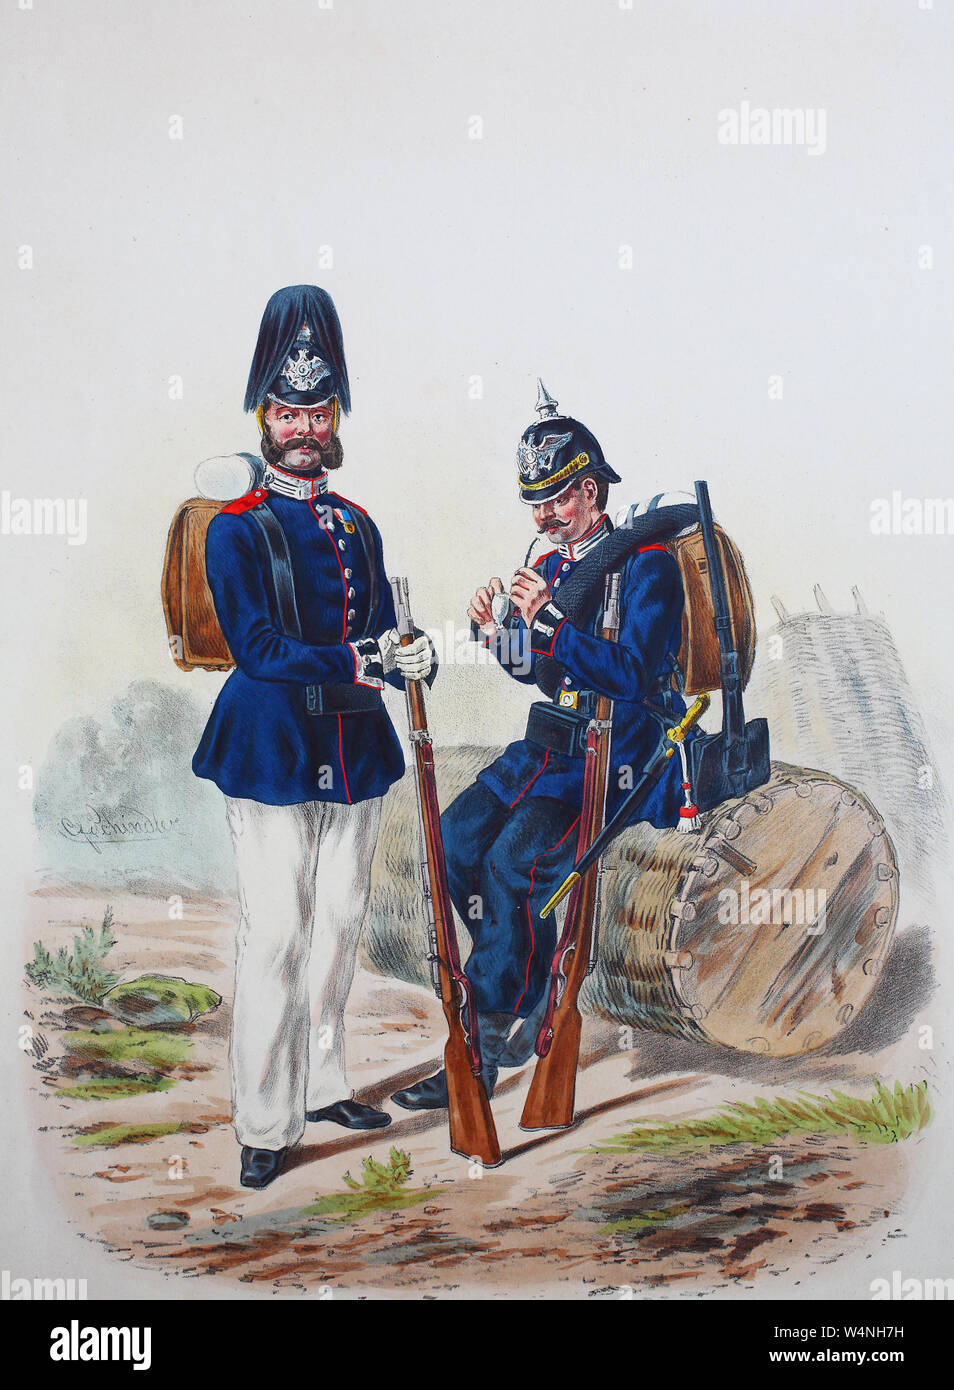 Royal Prussian Army, Guards Corps, Preußens Heer, preussische Garde, Garde Pionier Batallion, Unteroffizier, gemeiner Soldat, Digital improved reproduction of an illustration from the 19th century Stock Photo